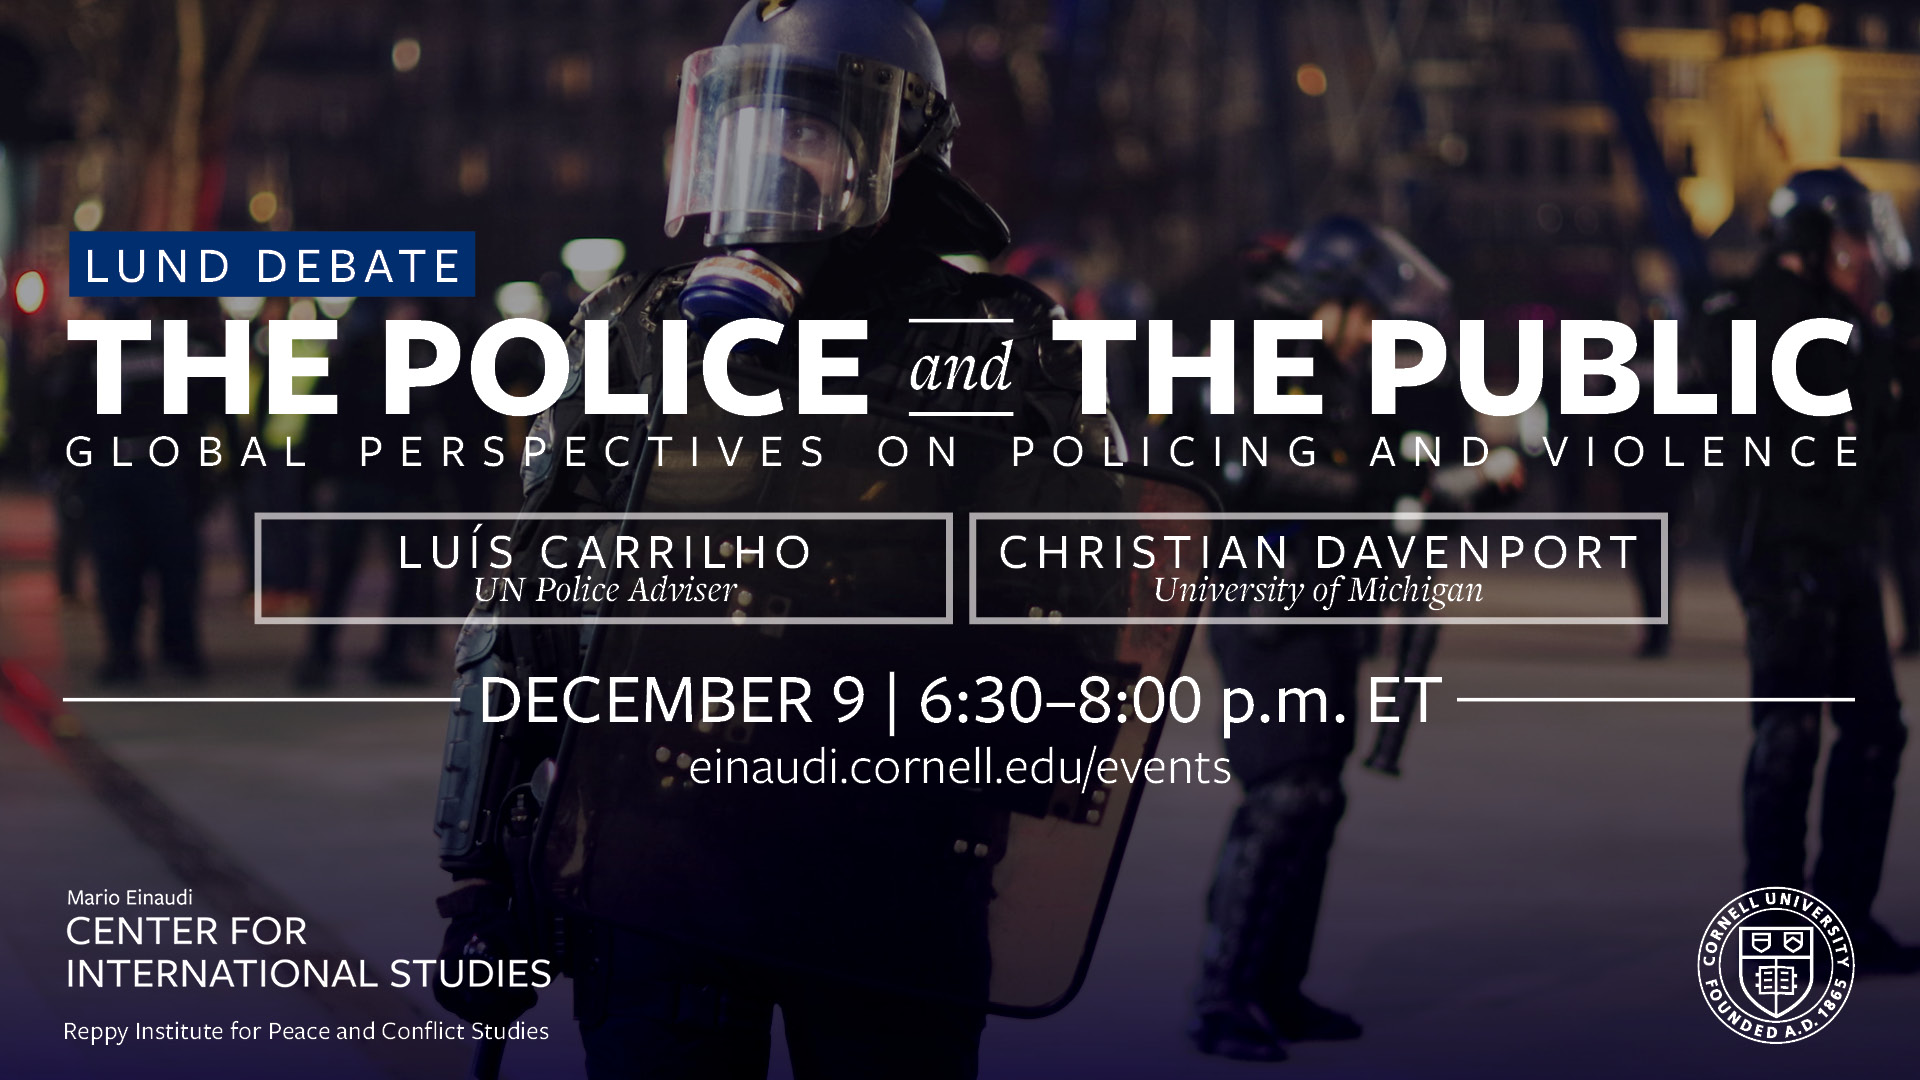 Lund Debate: The Police and the Public, Global Perspectives on Policing and Violence with Luis Carrilho and Christian Davenport on December 9, 6:30-8:00 p.m. ET